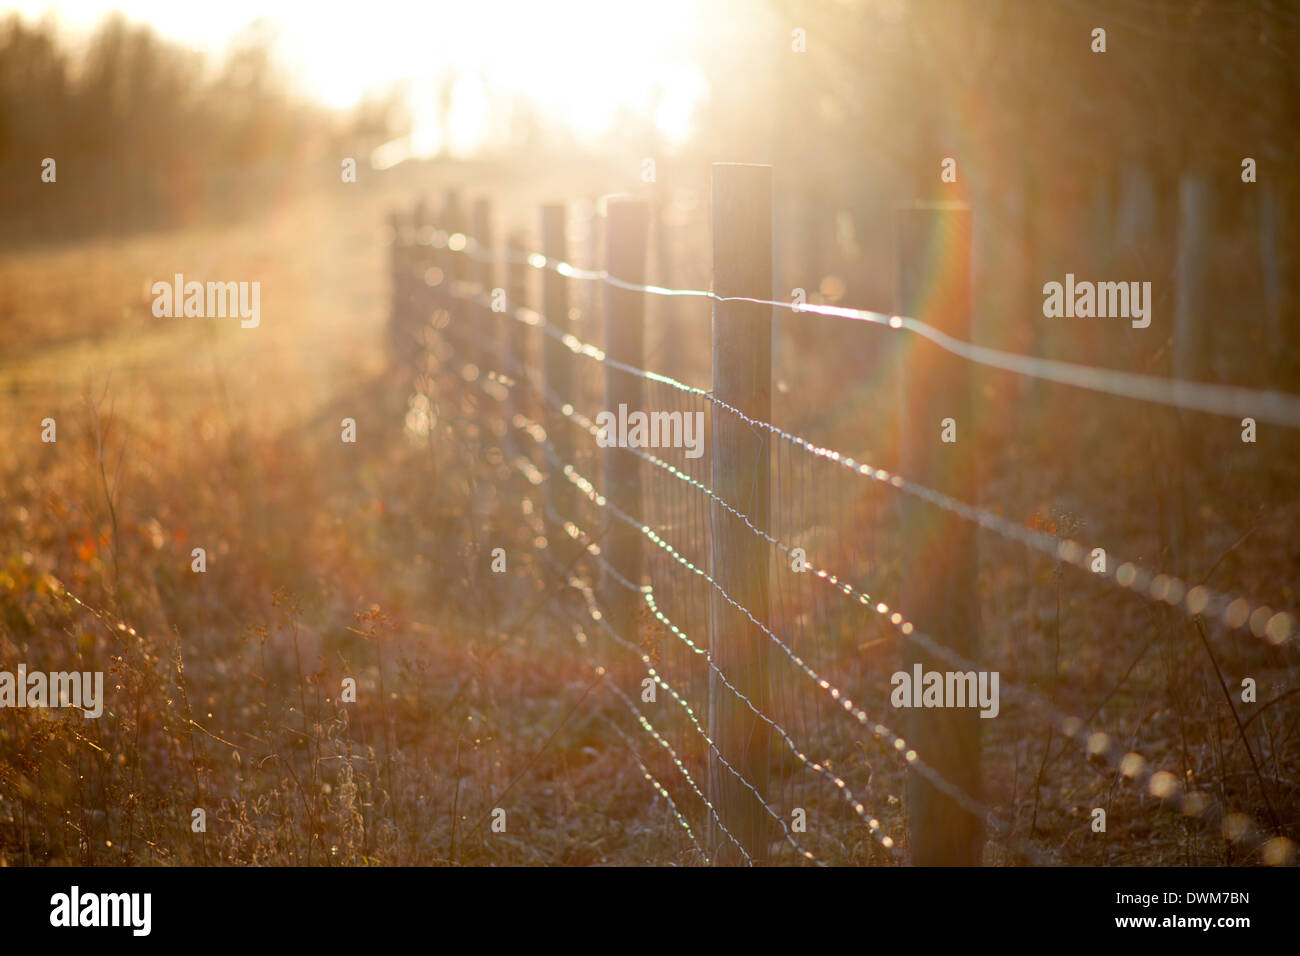 Lens flare looking directly into the sun along a fence in Wandlebury country park, Cambridge countryside - Stock Image